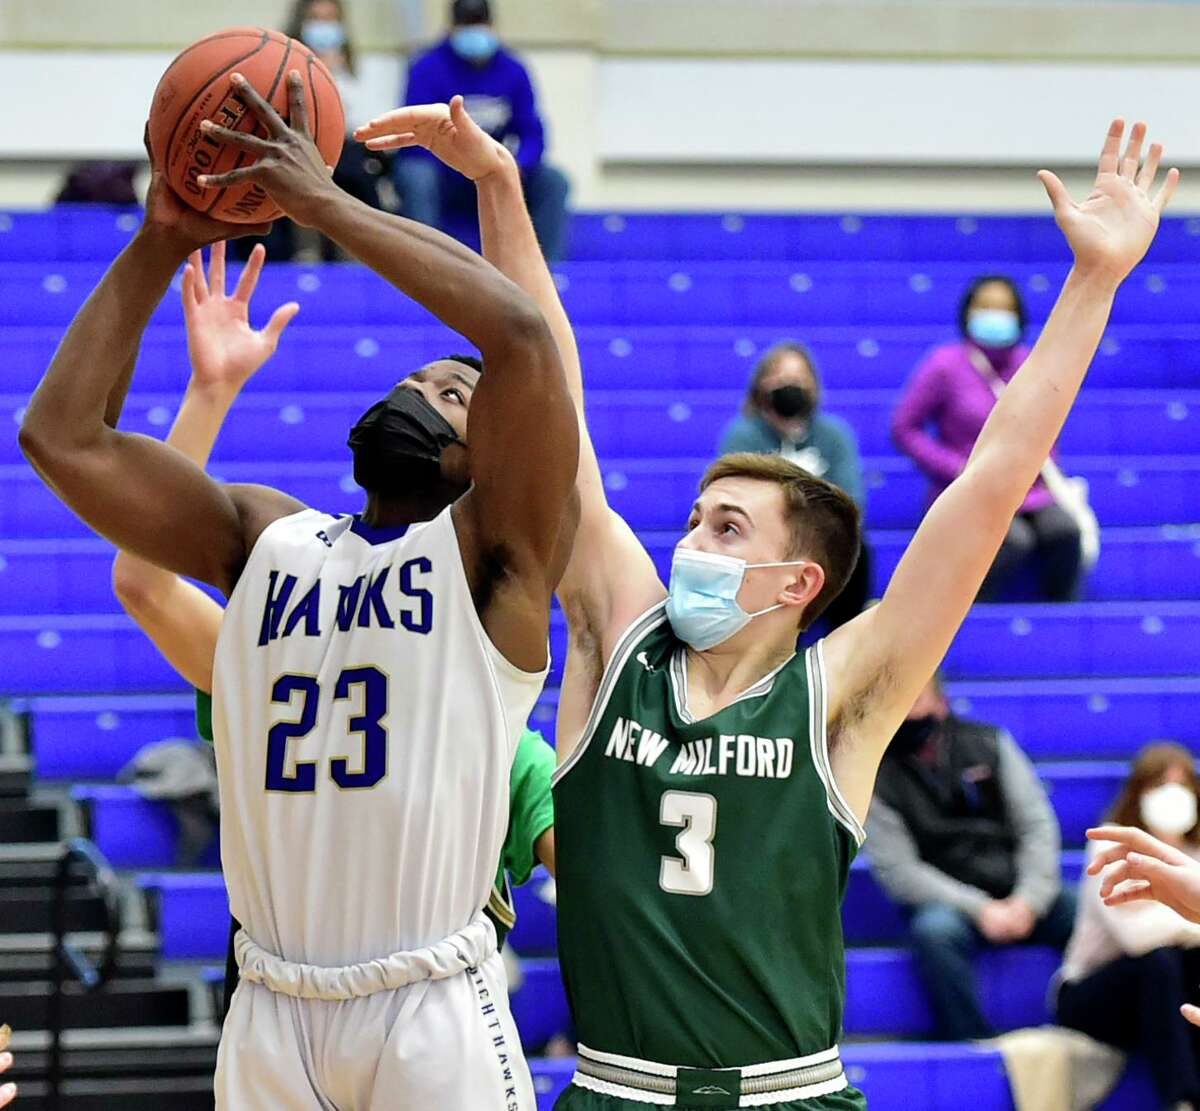 Newtown, Connecticut - Monday, March 15, 2021: Isaiah Williams of Newtown left, goes up for another shot after a rebound against Sam Tarrant of New Milford H.S. during the first quarter of basketball Monday at Newtown High School.